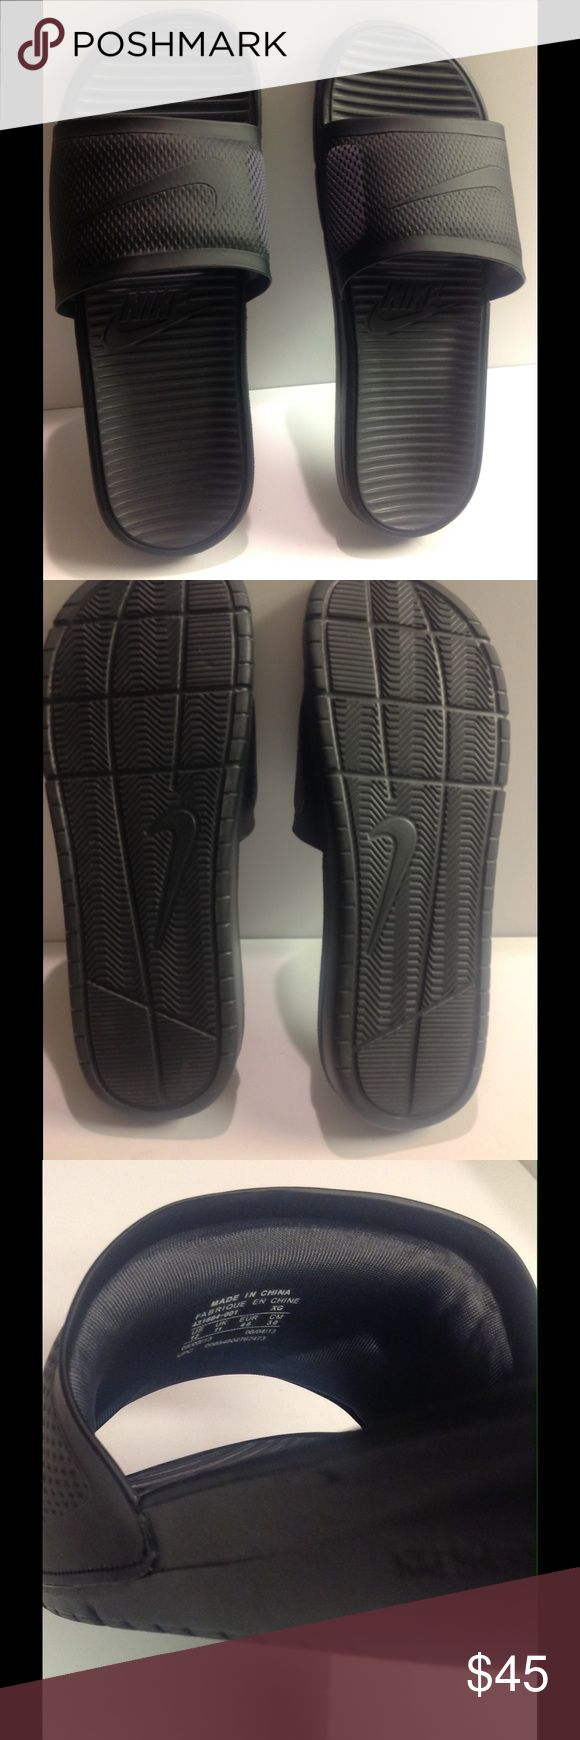 Nike Solarsoft Men's Slide New, never worn, men's size 12; sells for $79 on Amazon. Nike Shoes Sandals & Flip-Flops